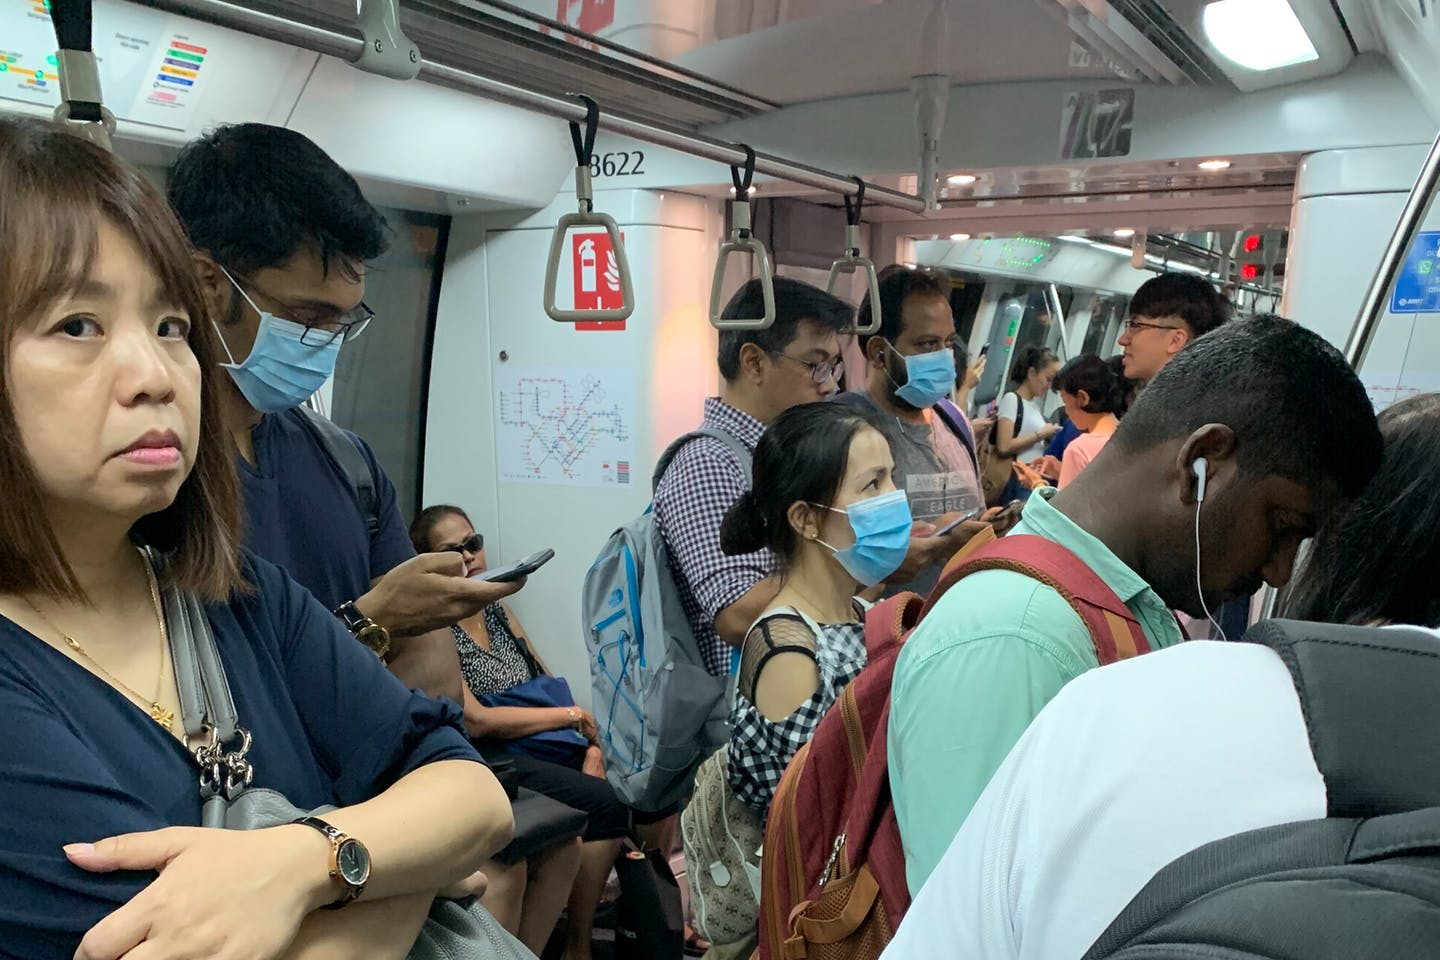 Commuters on a train in Singapore, some wearing disposable surgical masks as a protection measure from the Coronavirus. Image: Eco-Business